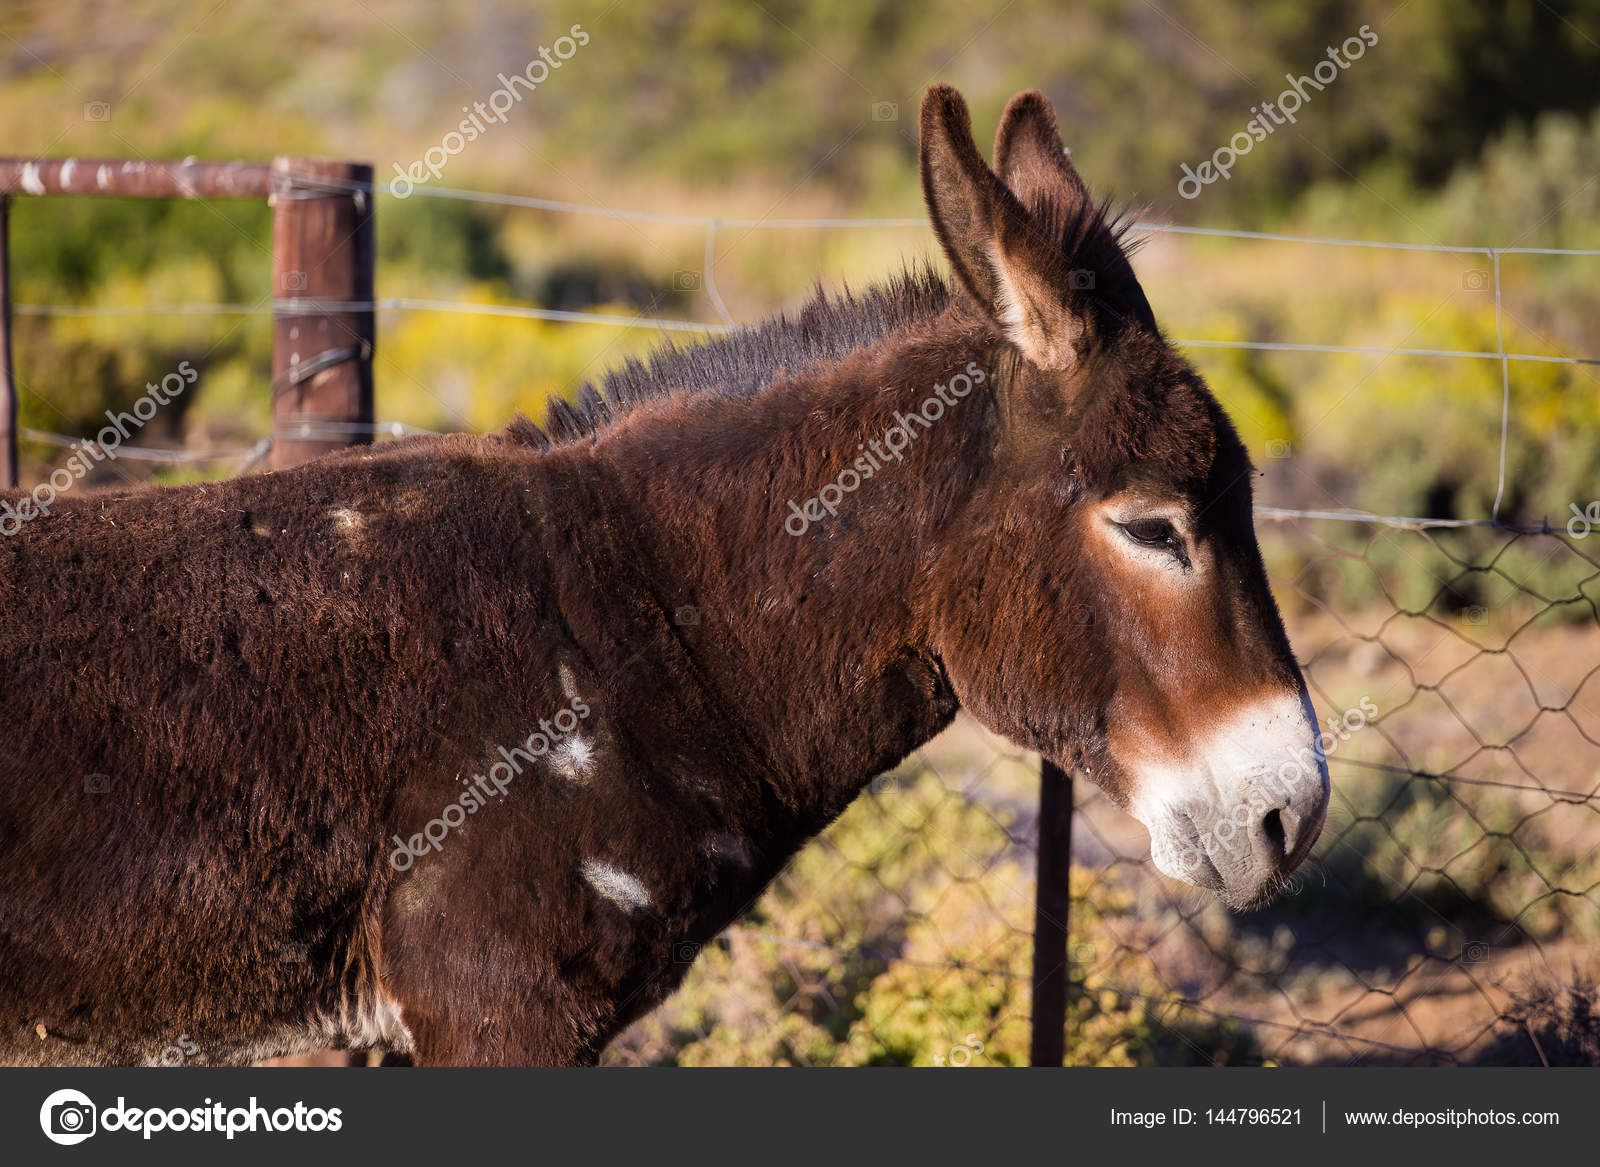 Áˆ Donkey And Cart Stock Pics Royalty Free Donkey Cart Pictures Download On Depositphotos